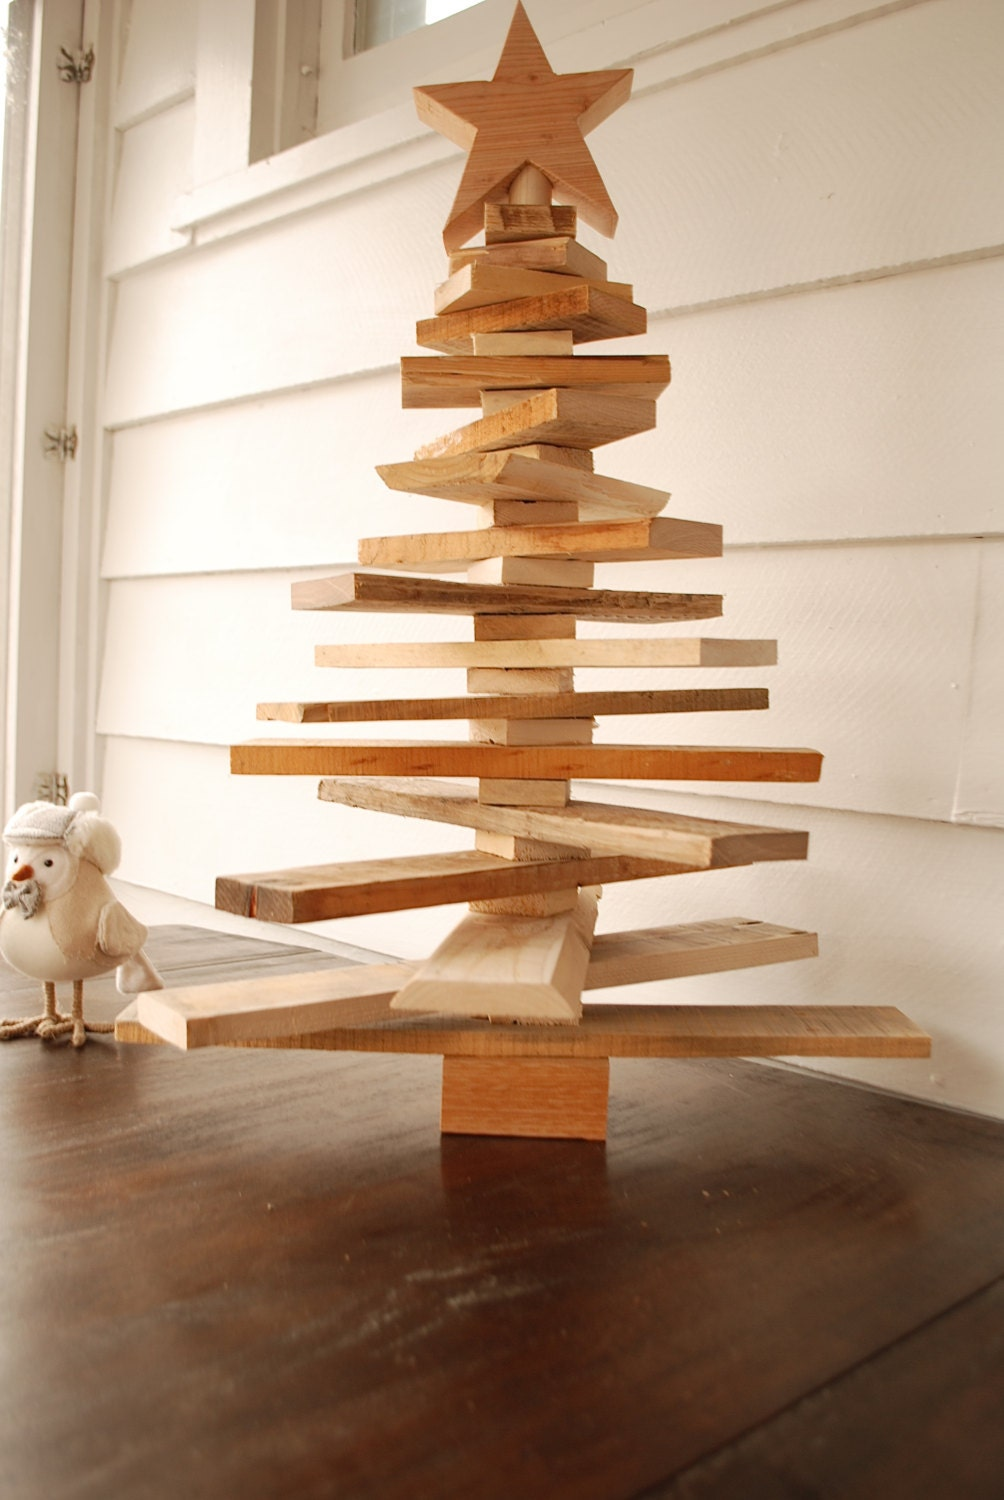 Pallet Christmas Tree Spaced Out Holiday Decor Pallet art